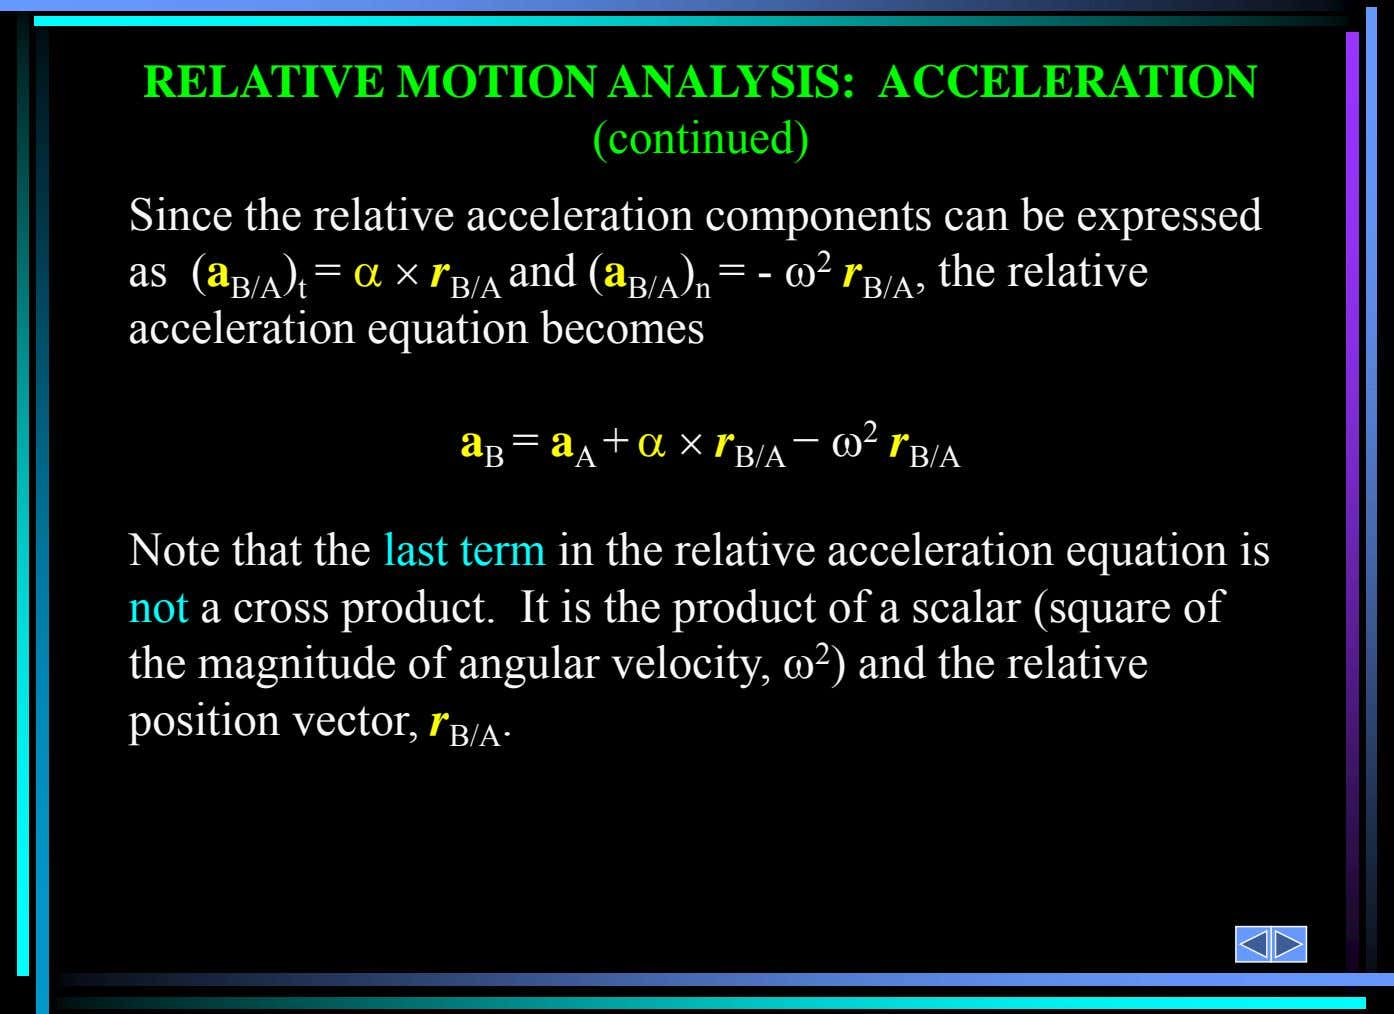 Note that the last term in the relative acceleration equation is not a cross product. It